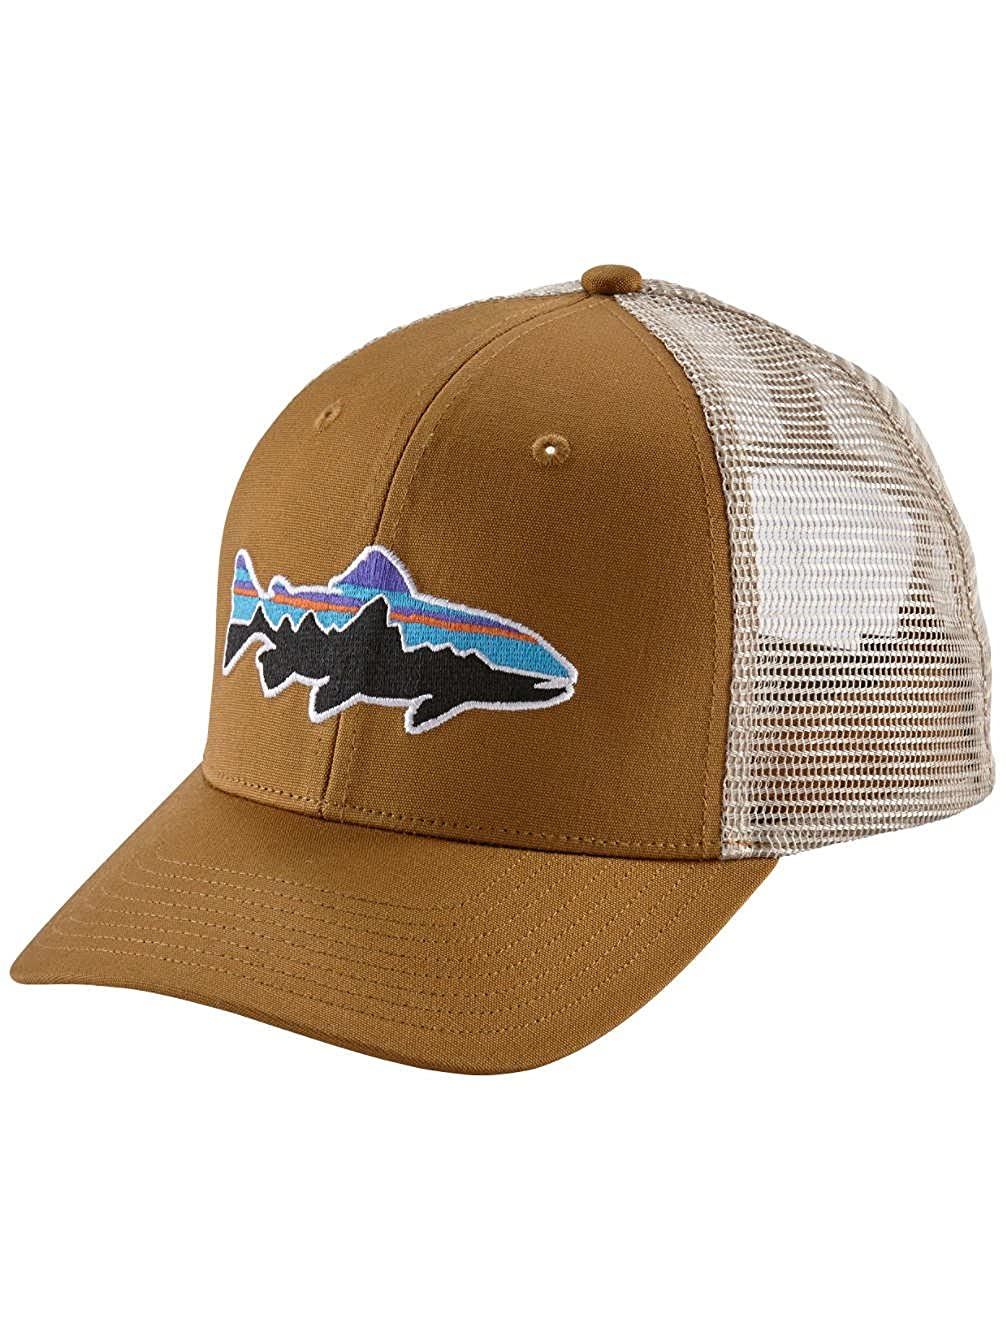 Amazon.com  Patagonia Fit z Roy Trout Trucker Hat 6df758e8969a